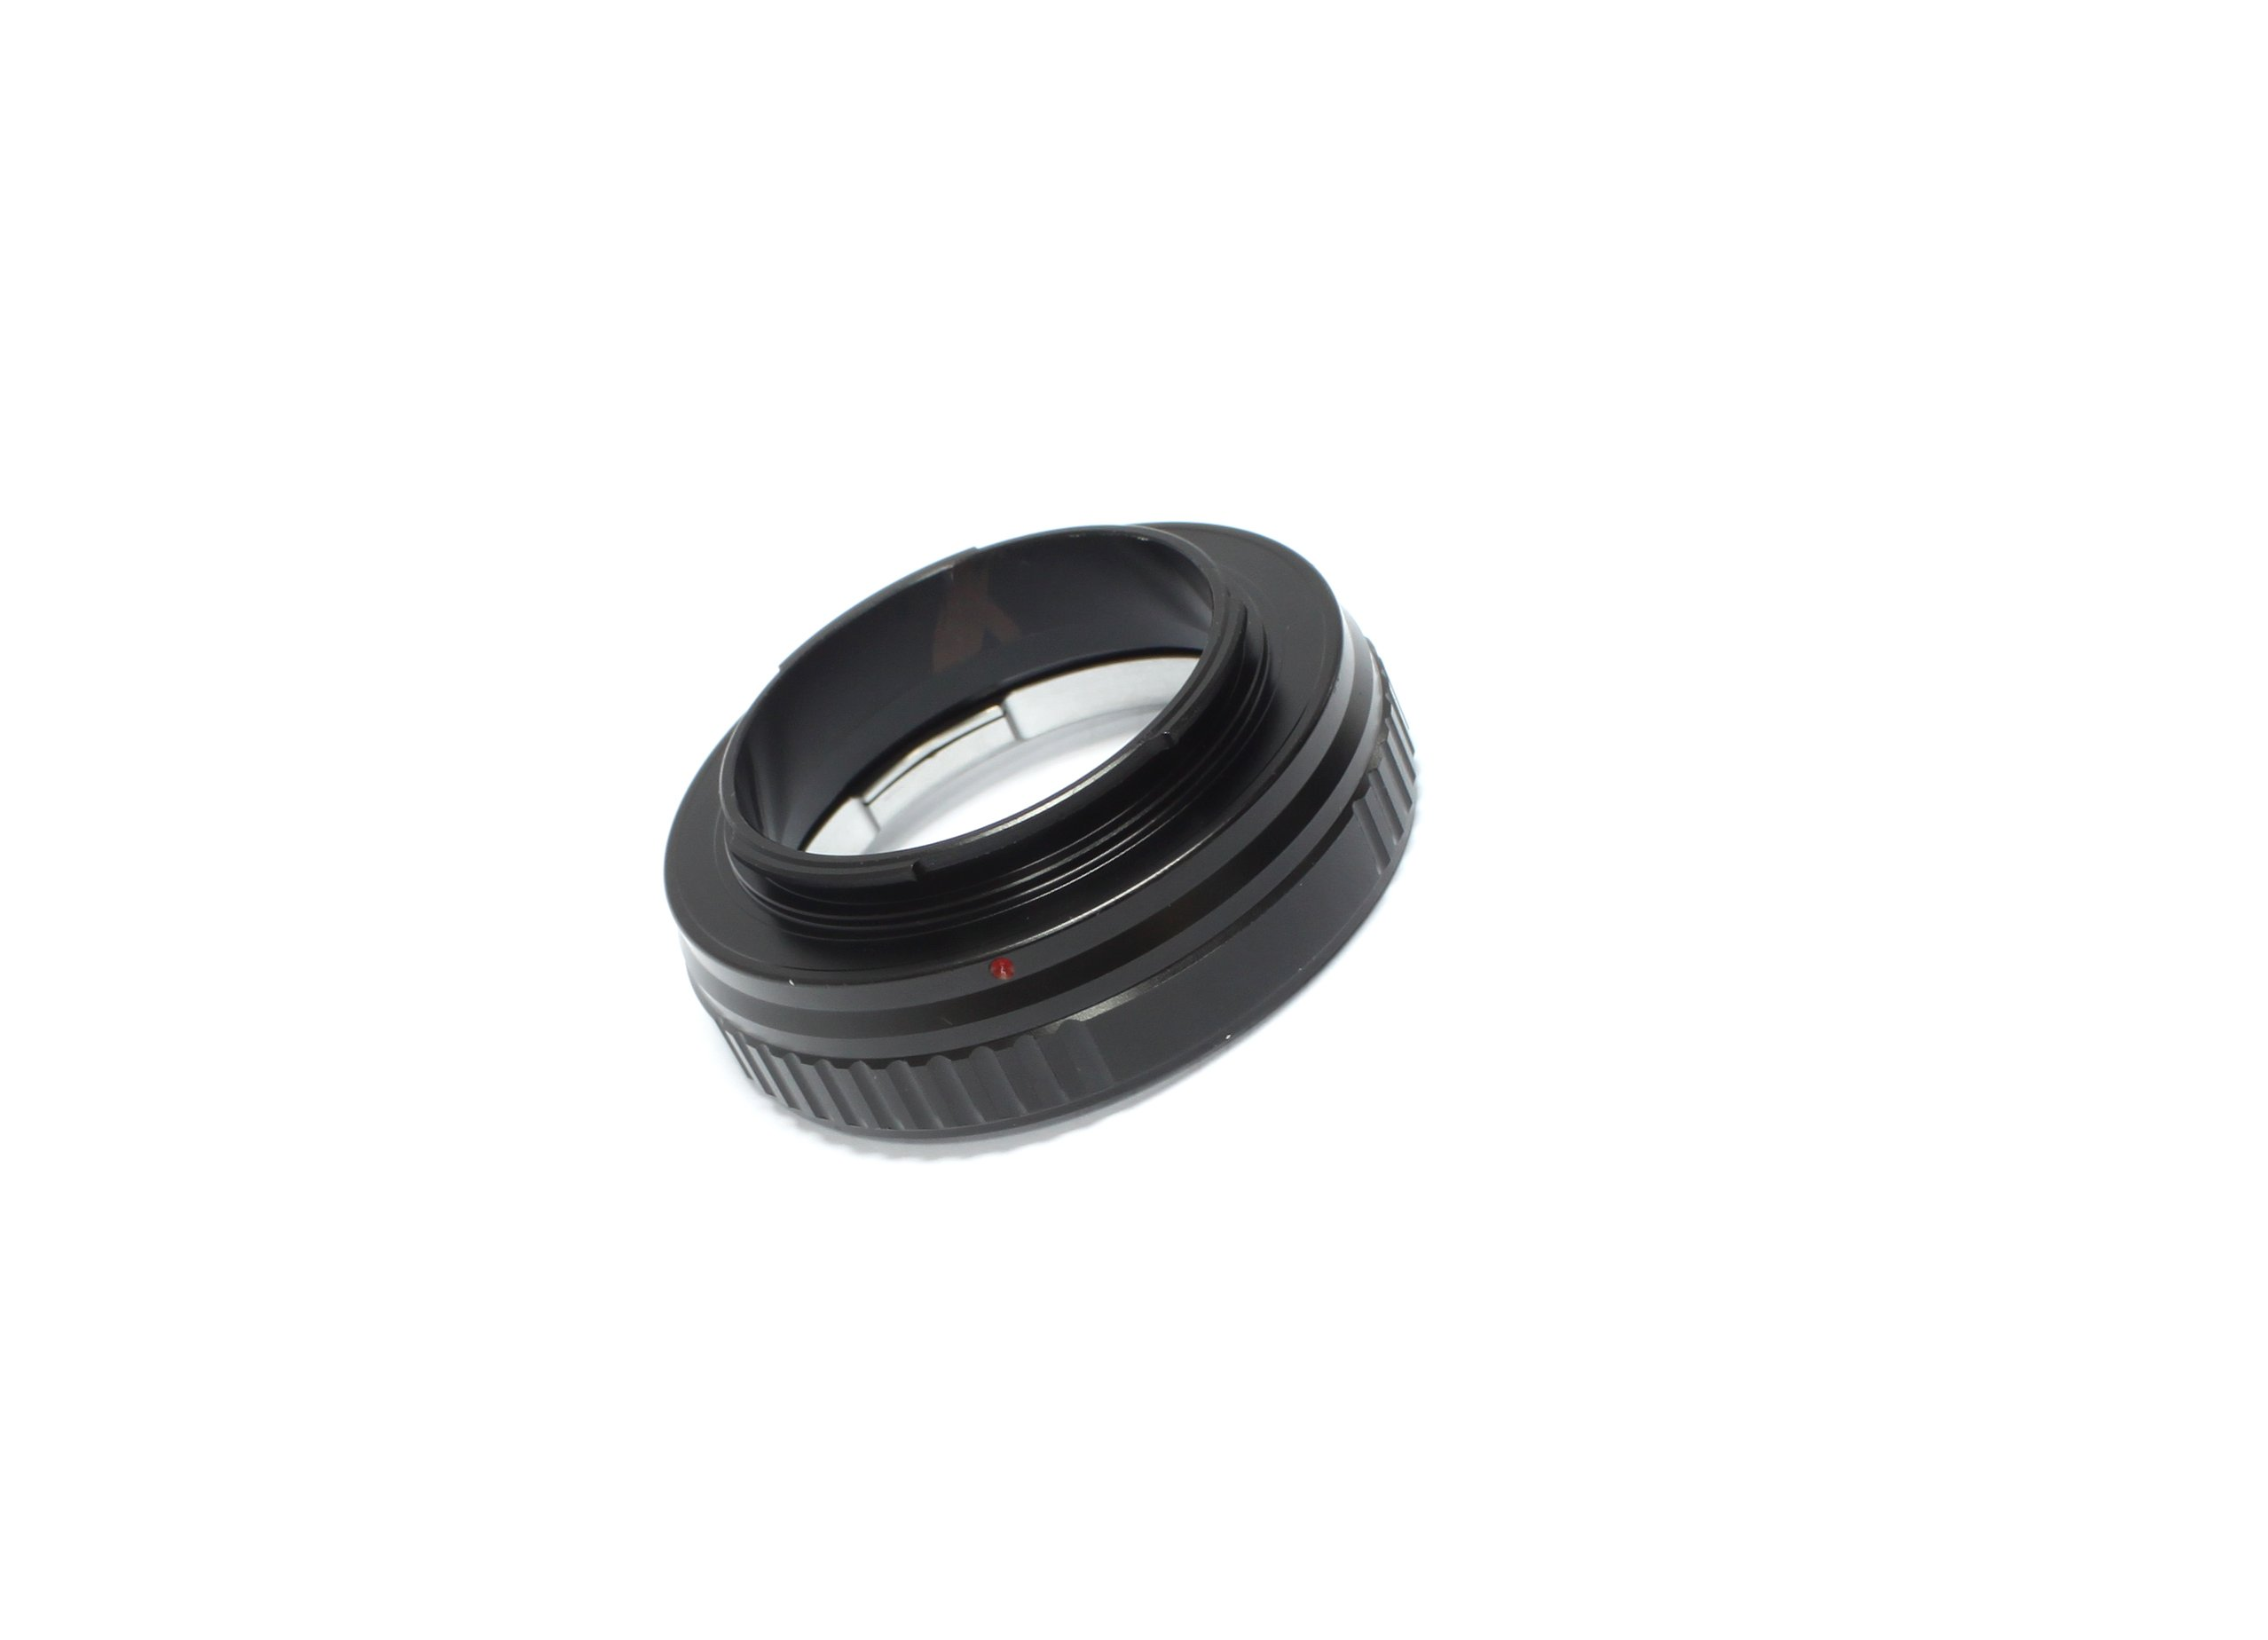 Pixco Lens Adapter For Hasselblad Xpan Lens To SONY E NEX Adapter A5100 A6000 A5000 NEX-5T NEX-3 NEX-5 NEX-VG30